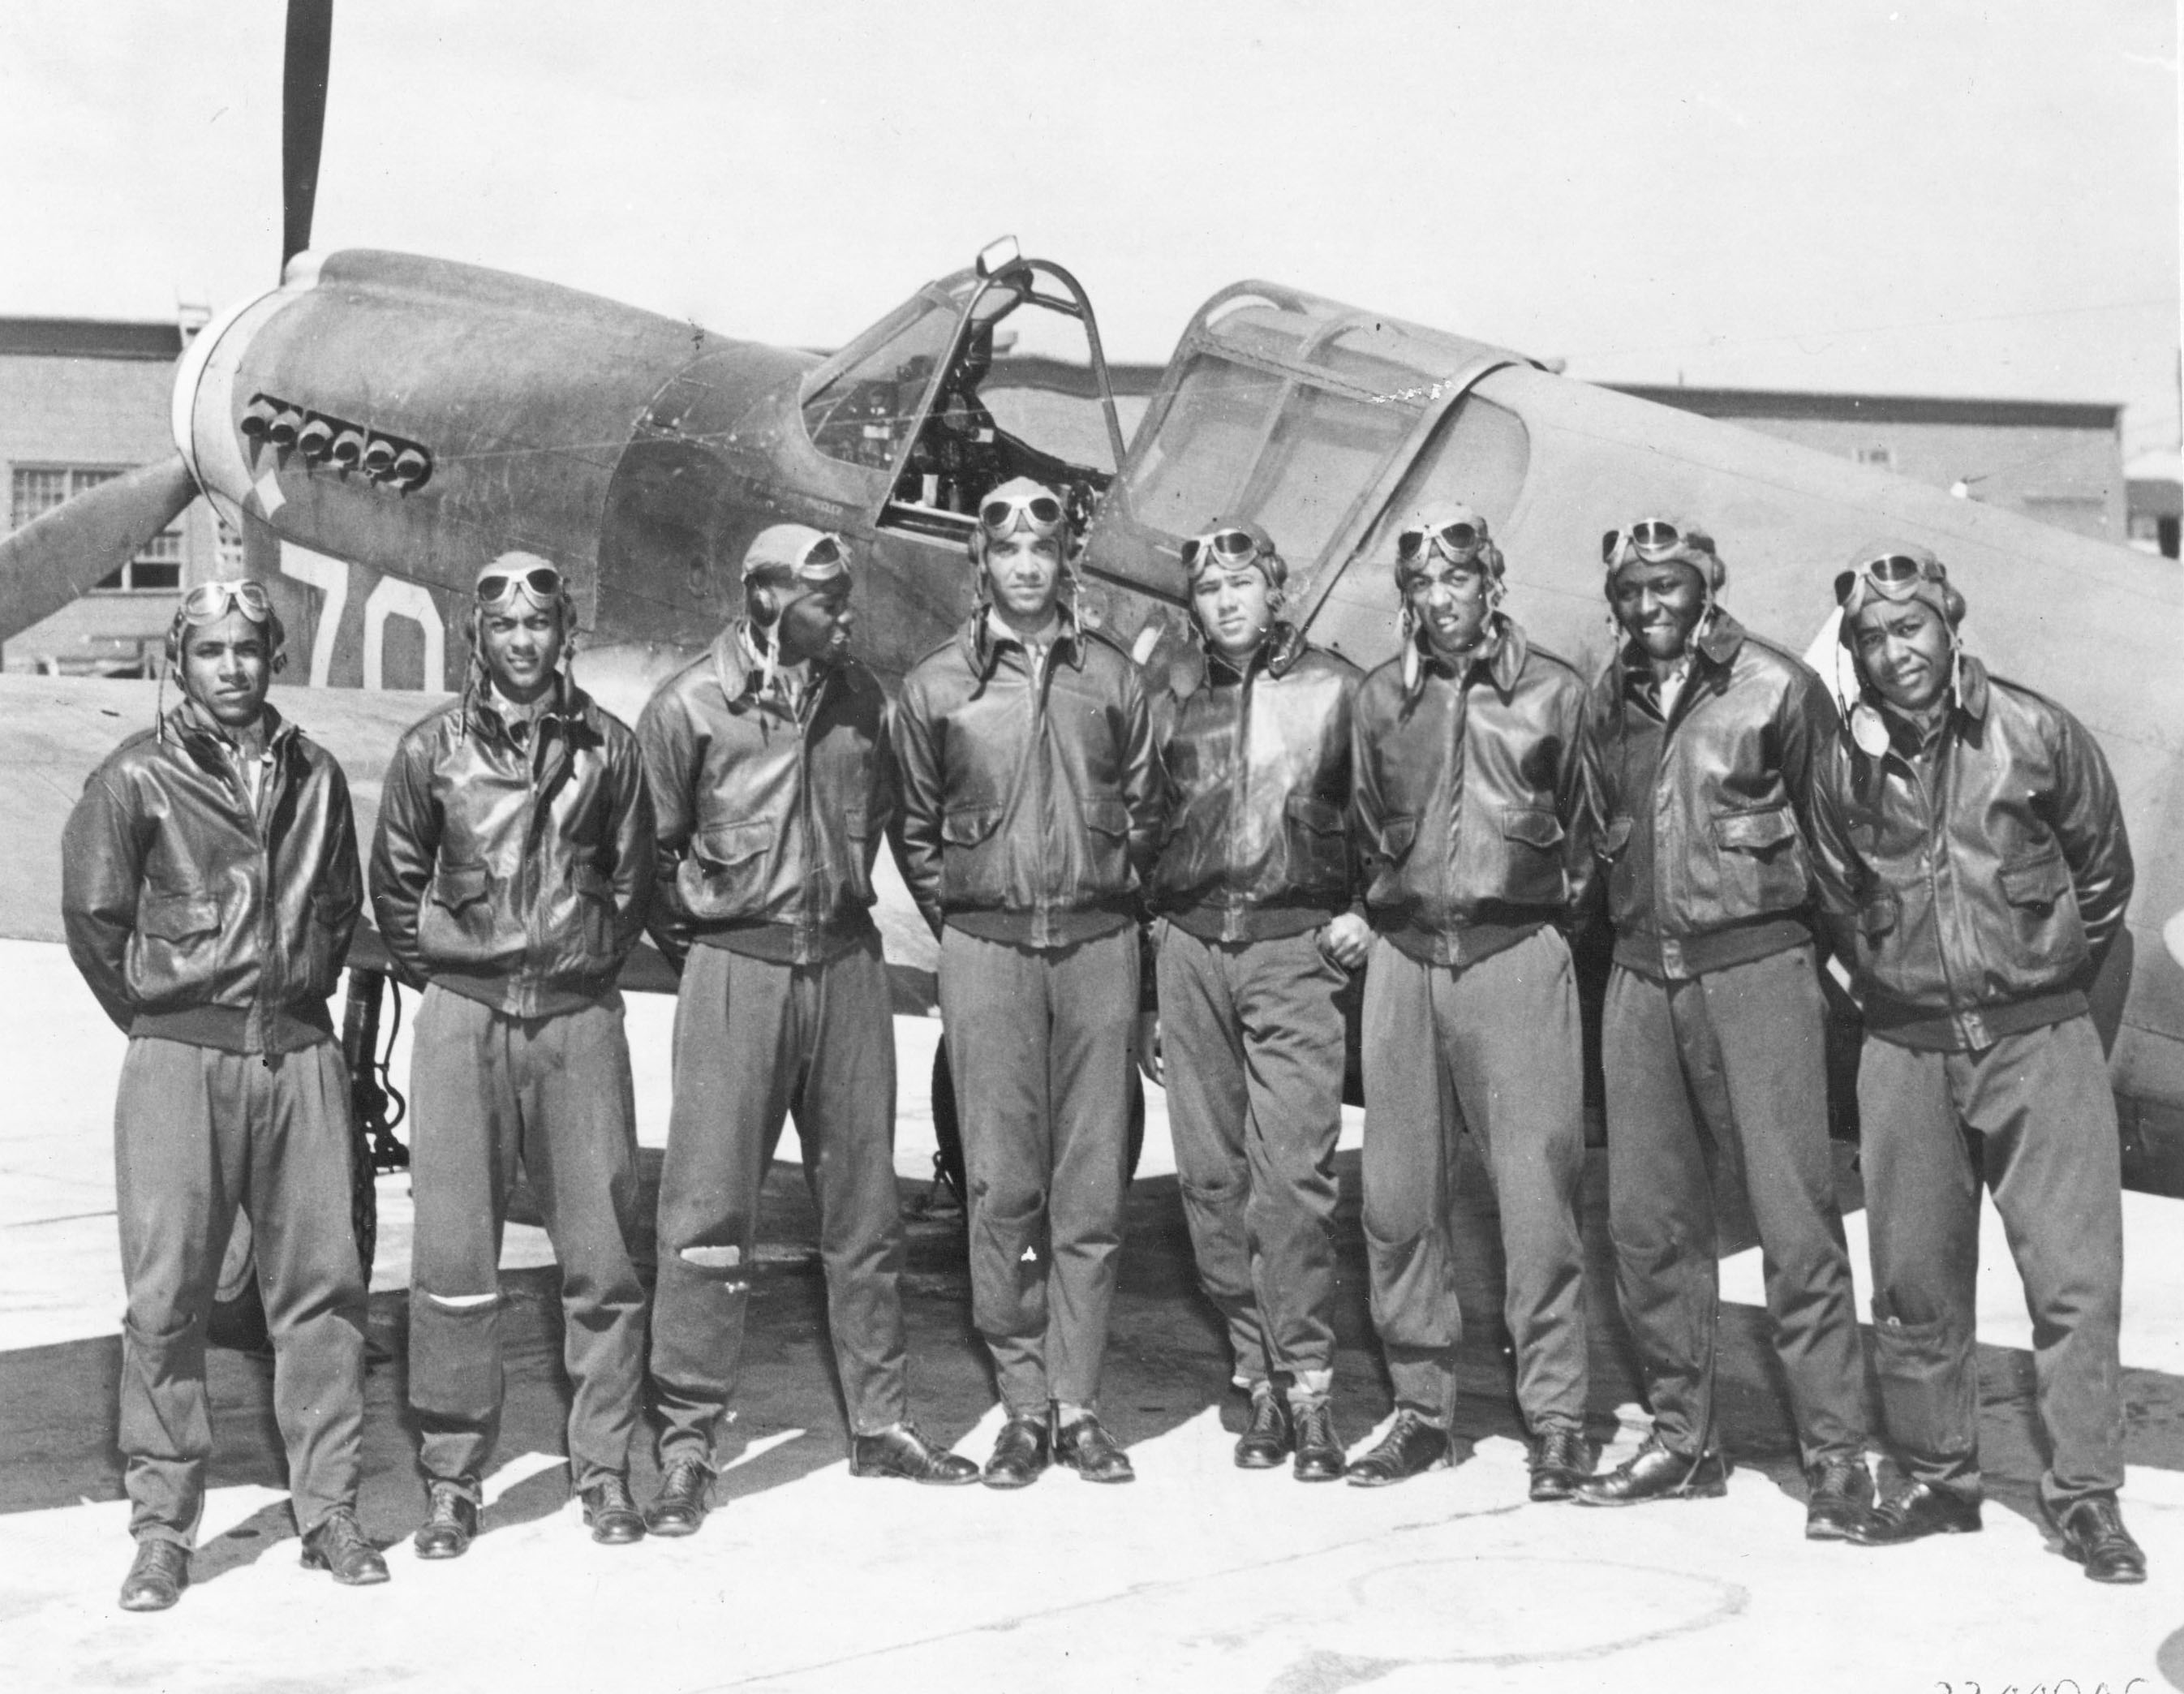 Tuskegee_Airmen_-_Circa_May_1942_to_Aug_1943.jpg